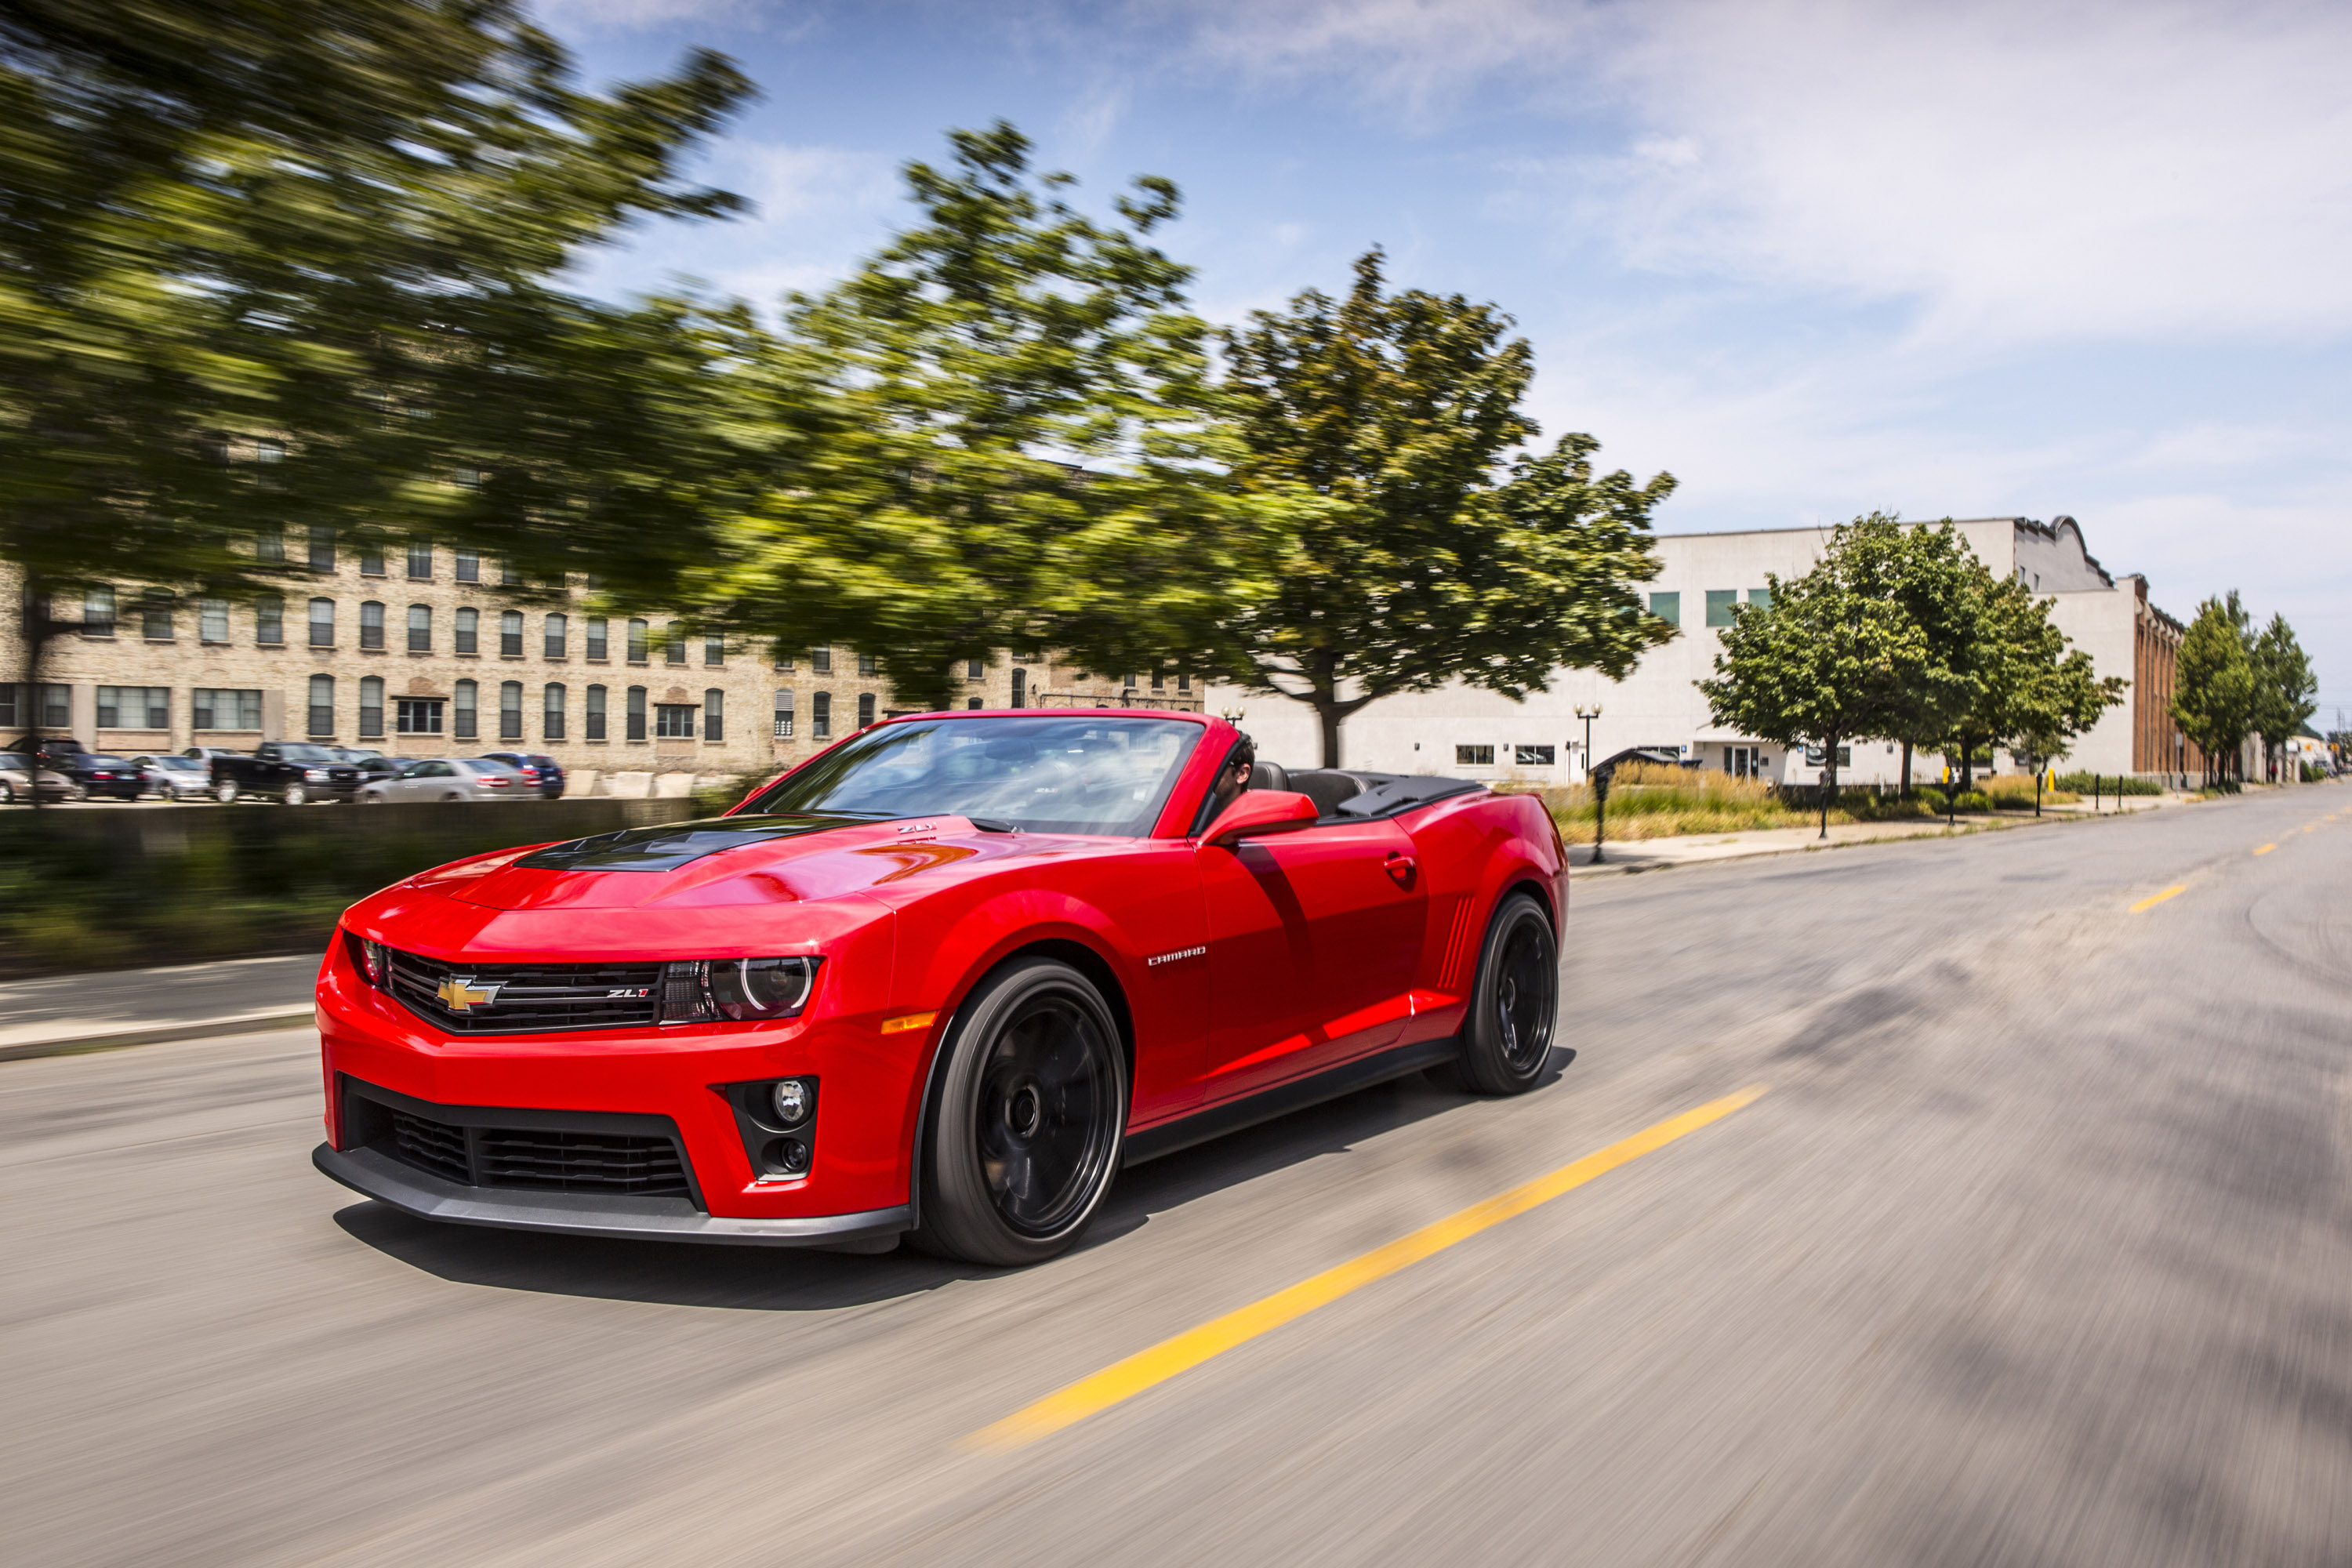 Chevrolet Camaro ZL1 Convertible photo #1